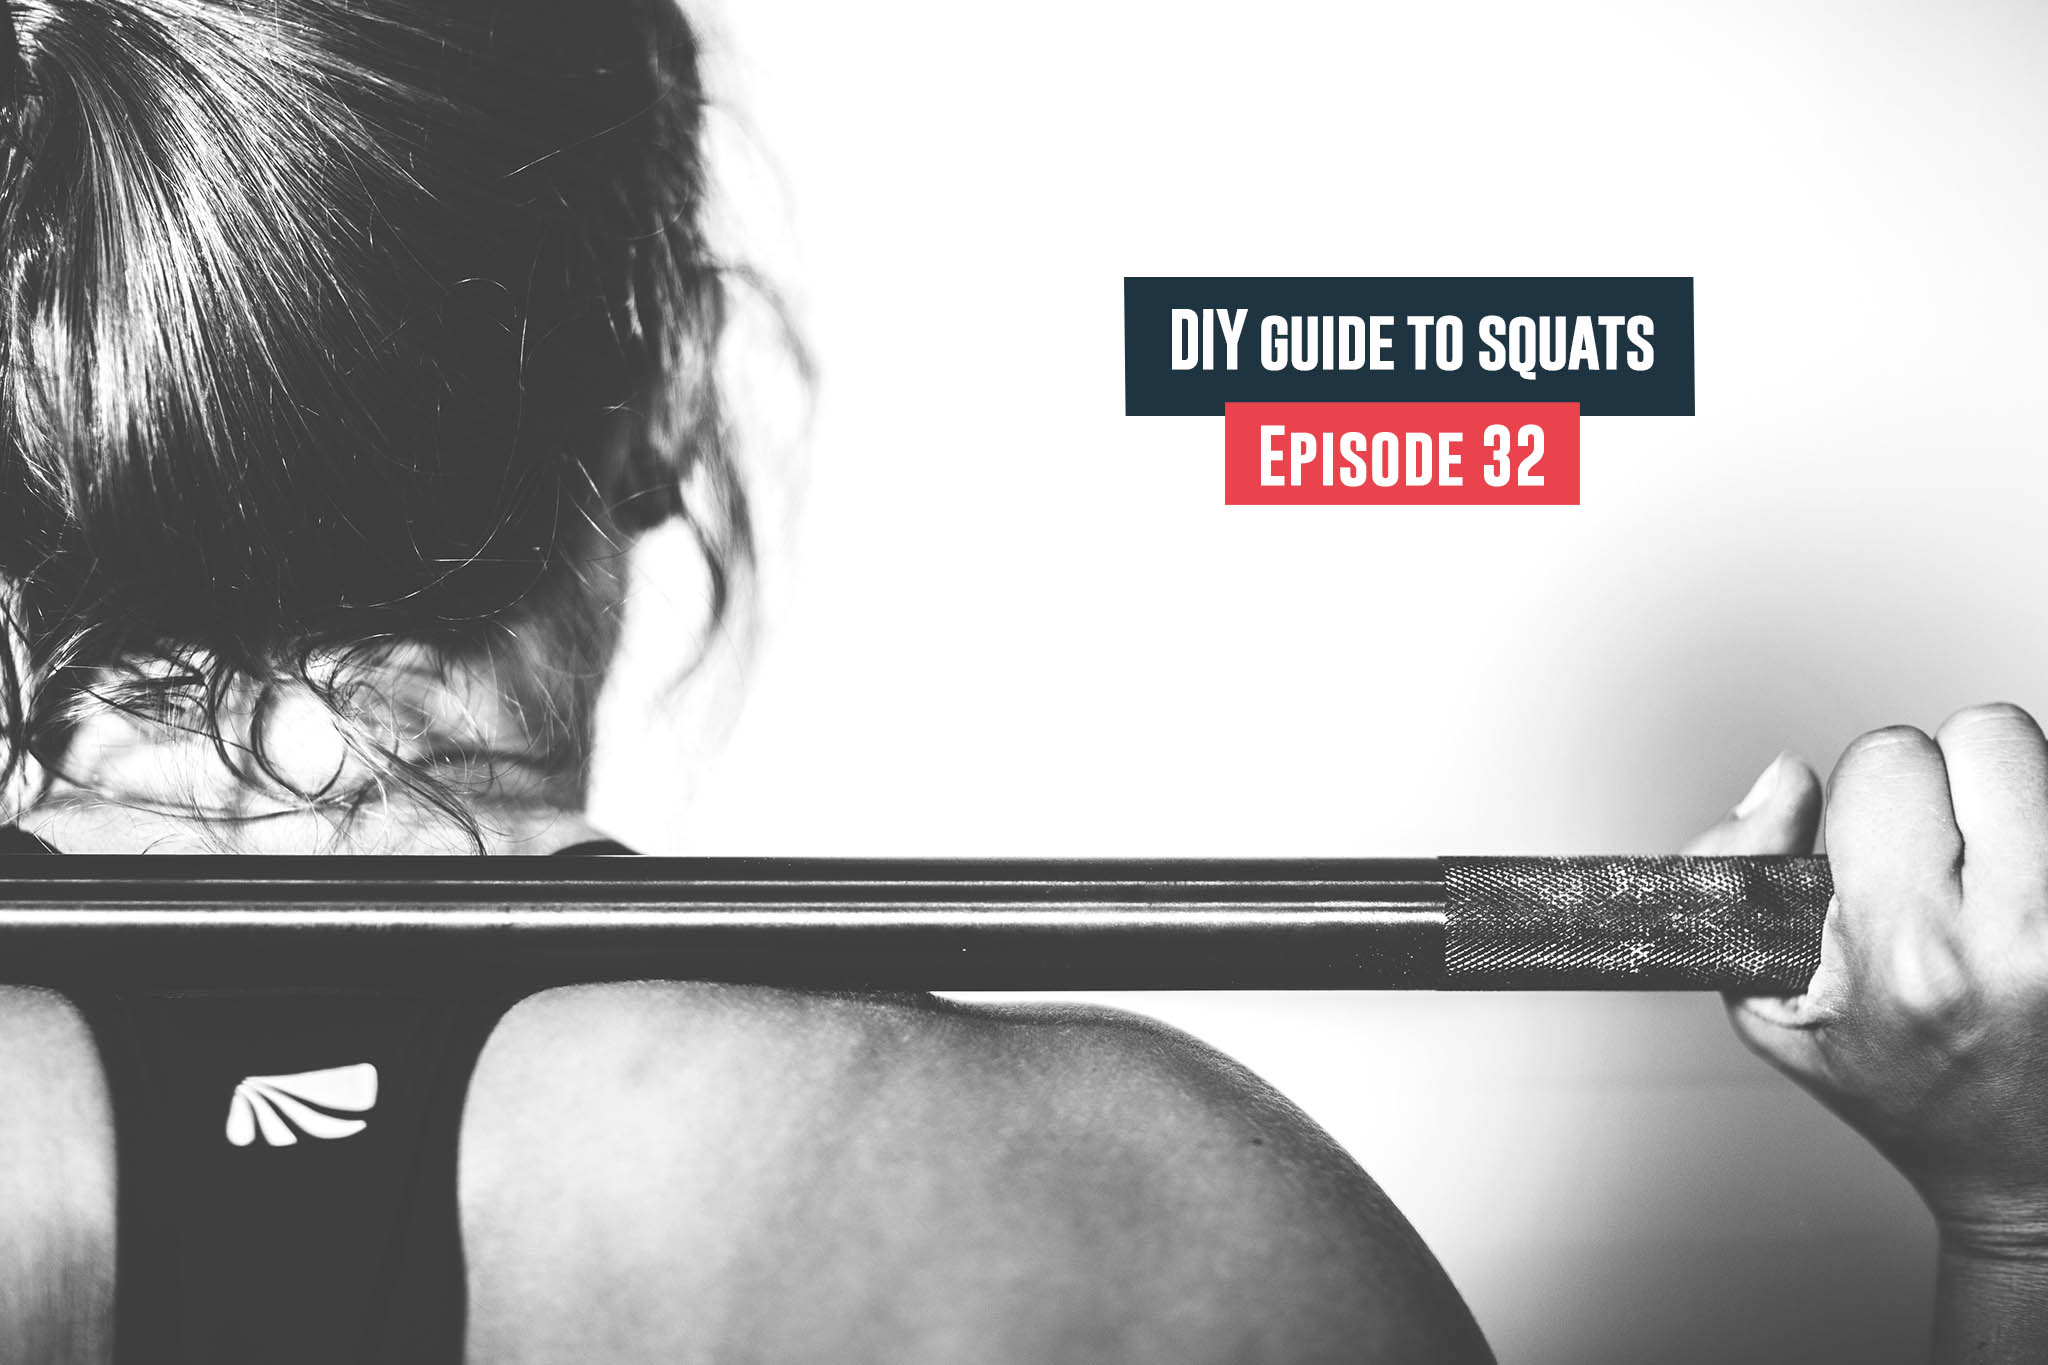 DIY guide to squats